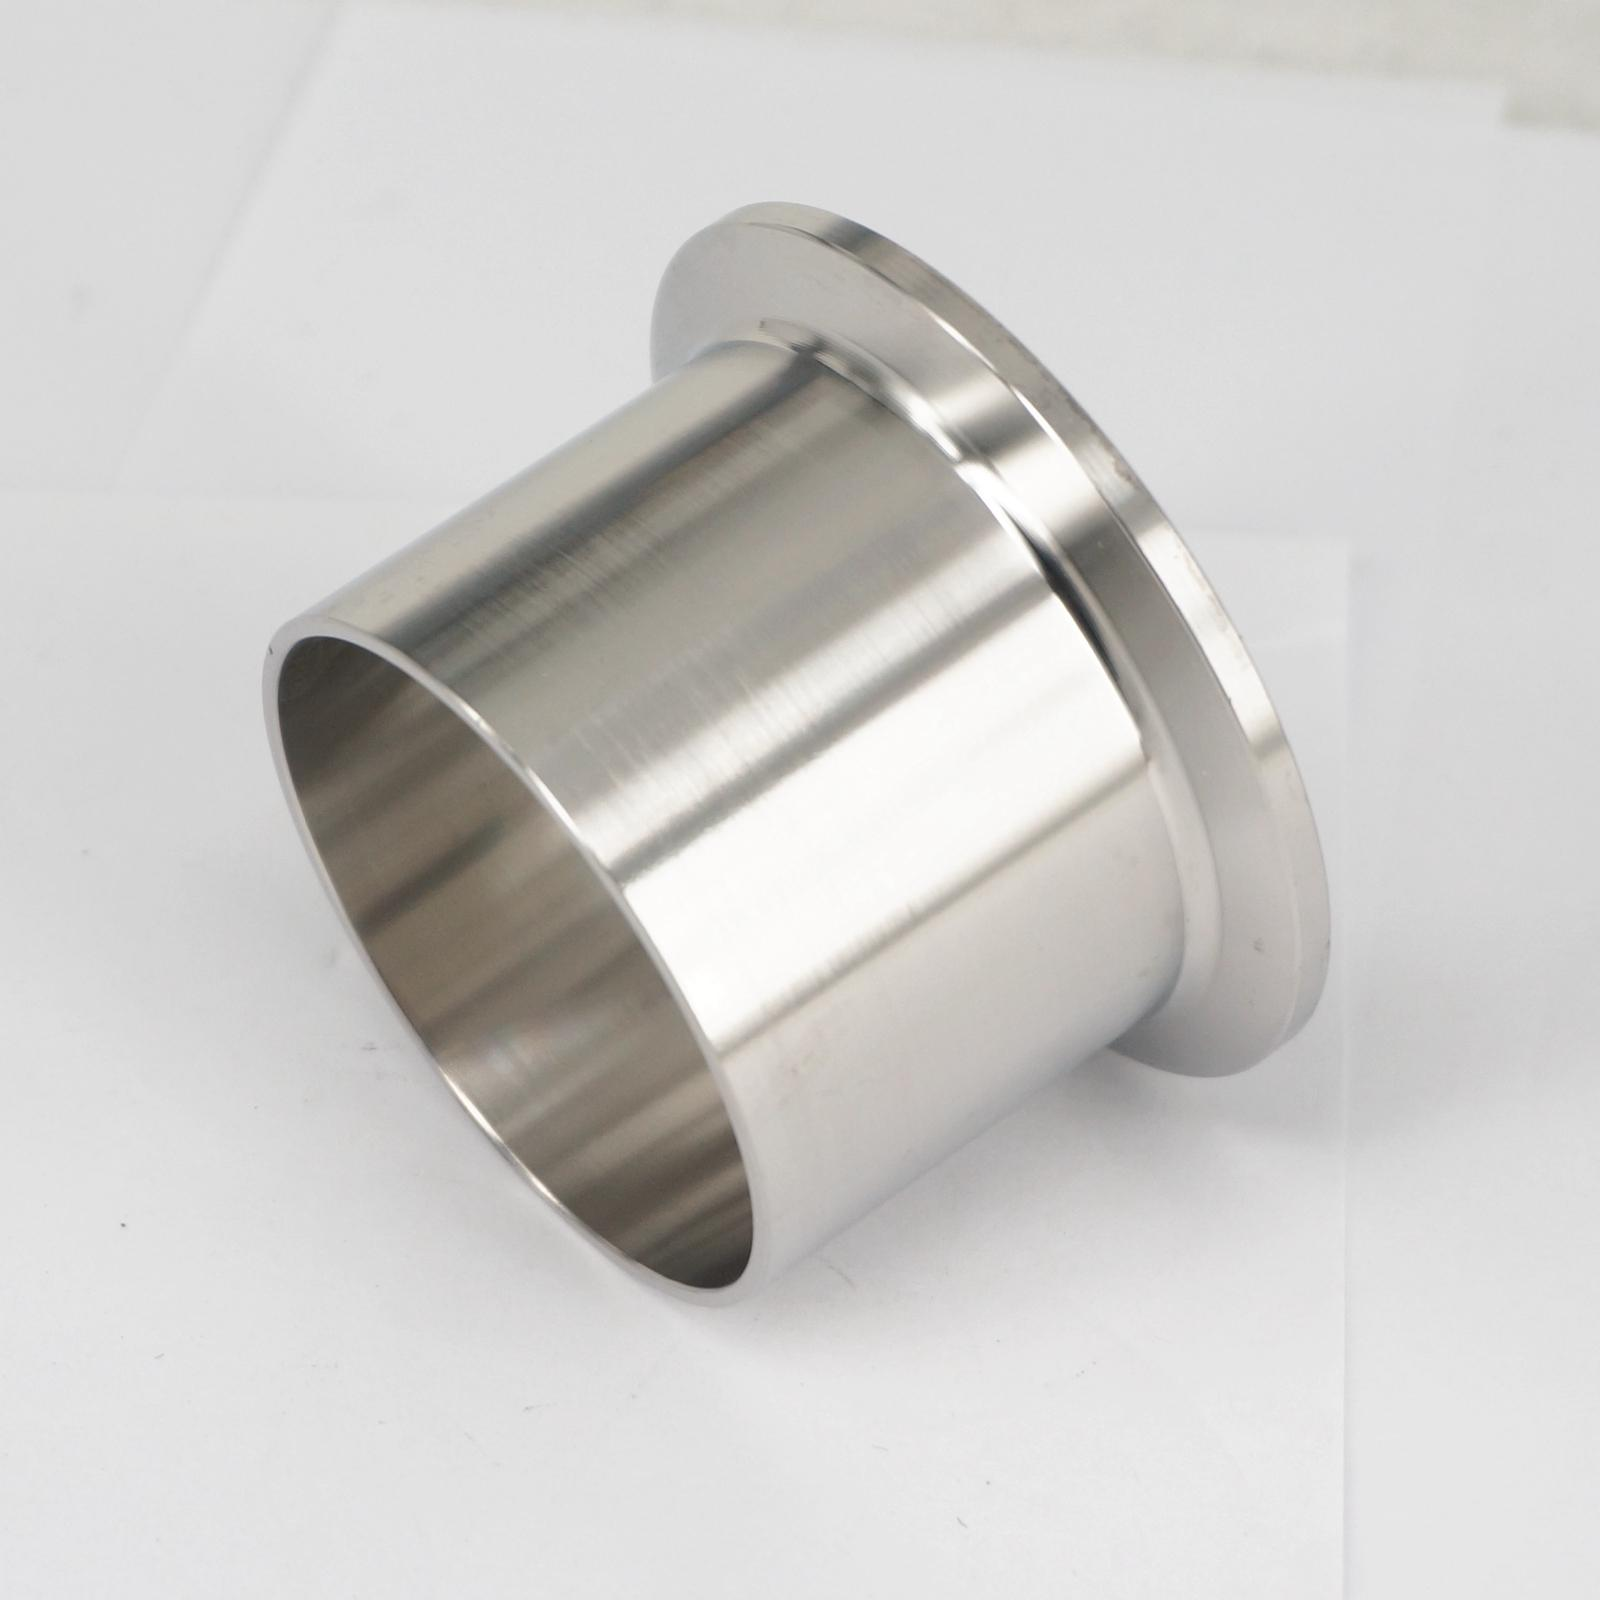 51mm 2 Tube O/D x 2 Tri Clamp x 40mm Height 304 Stainless Steel Sanitary Weld Ferrule Connector Pipe Fitting